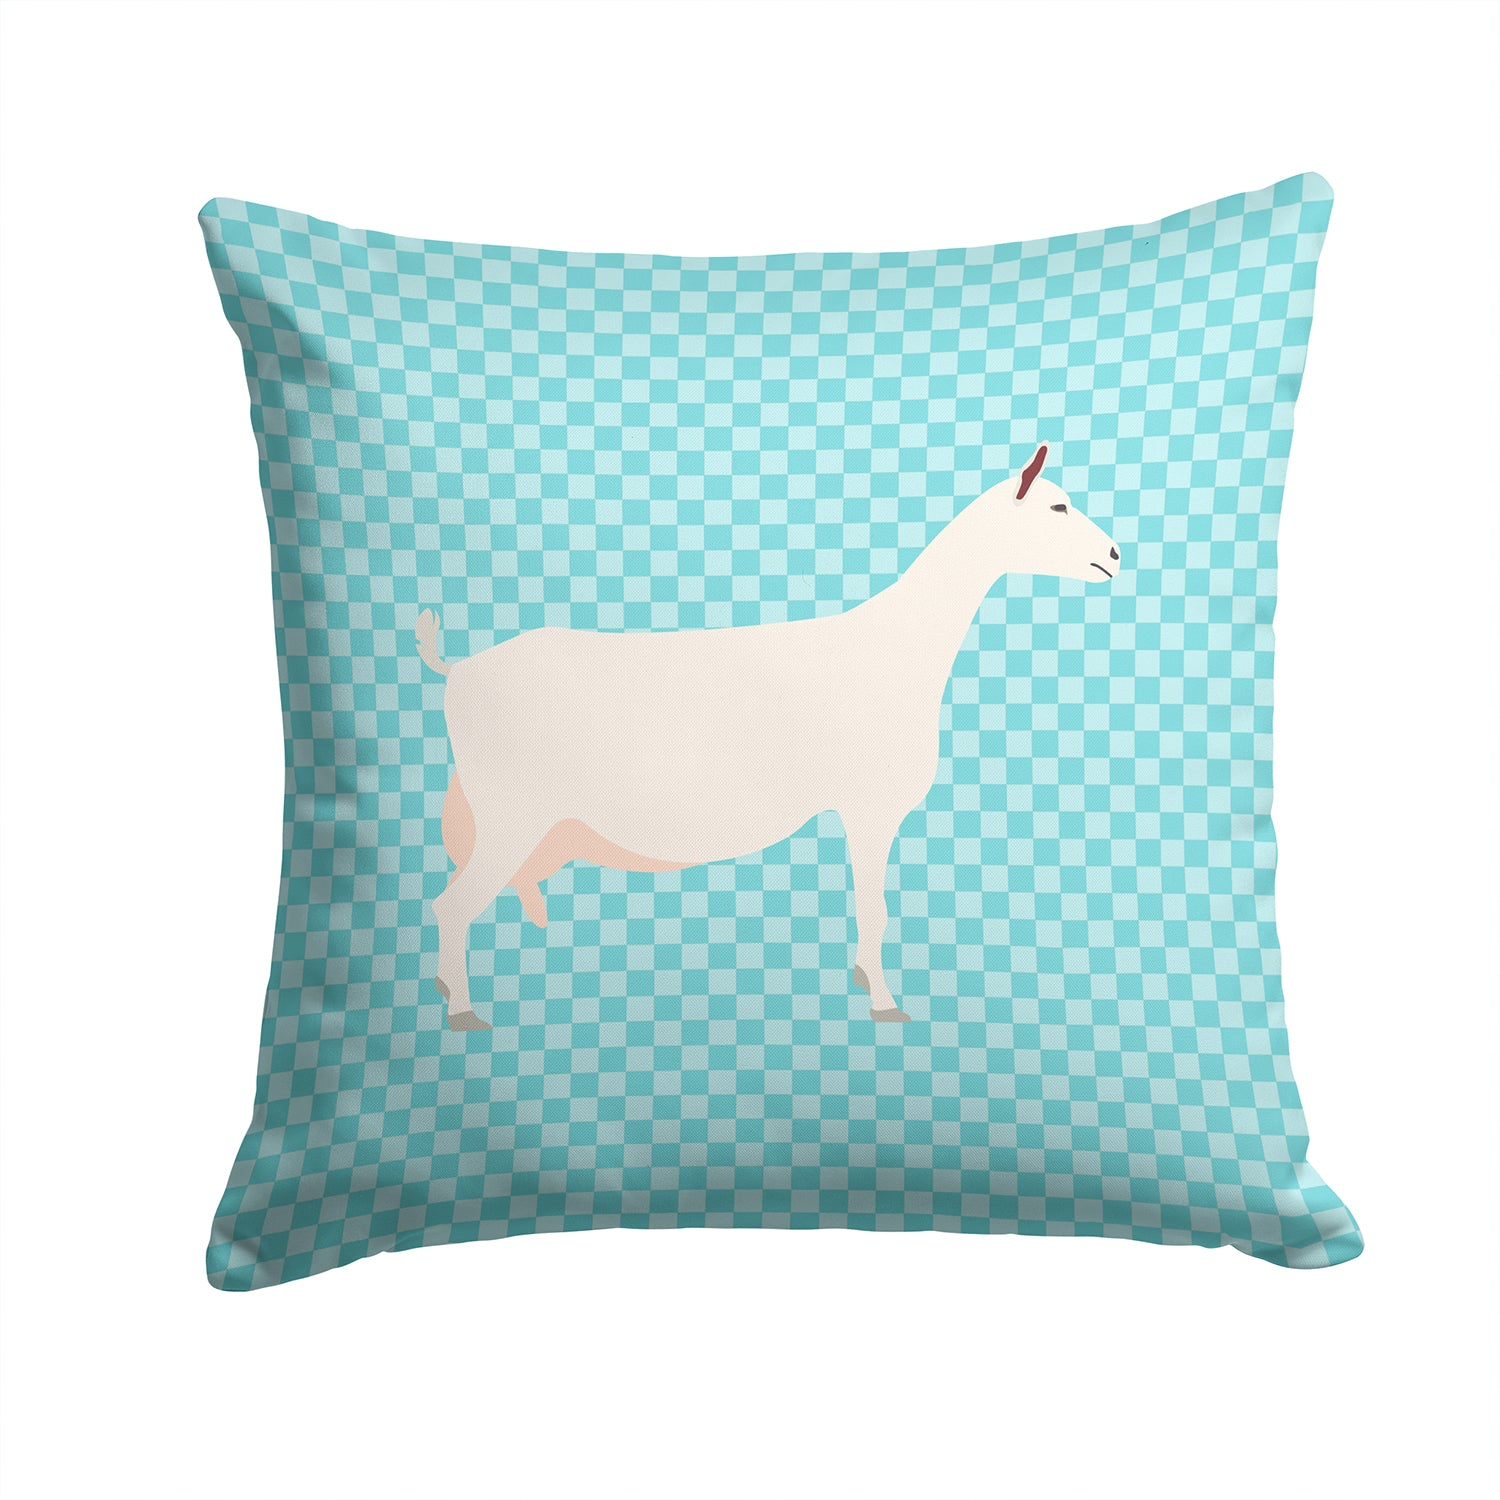 Saanen Goat Blue Check Fabric Decorative Pillow BB8063PW1414 by Caroline's Treasures